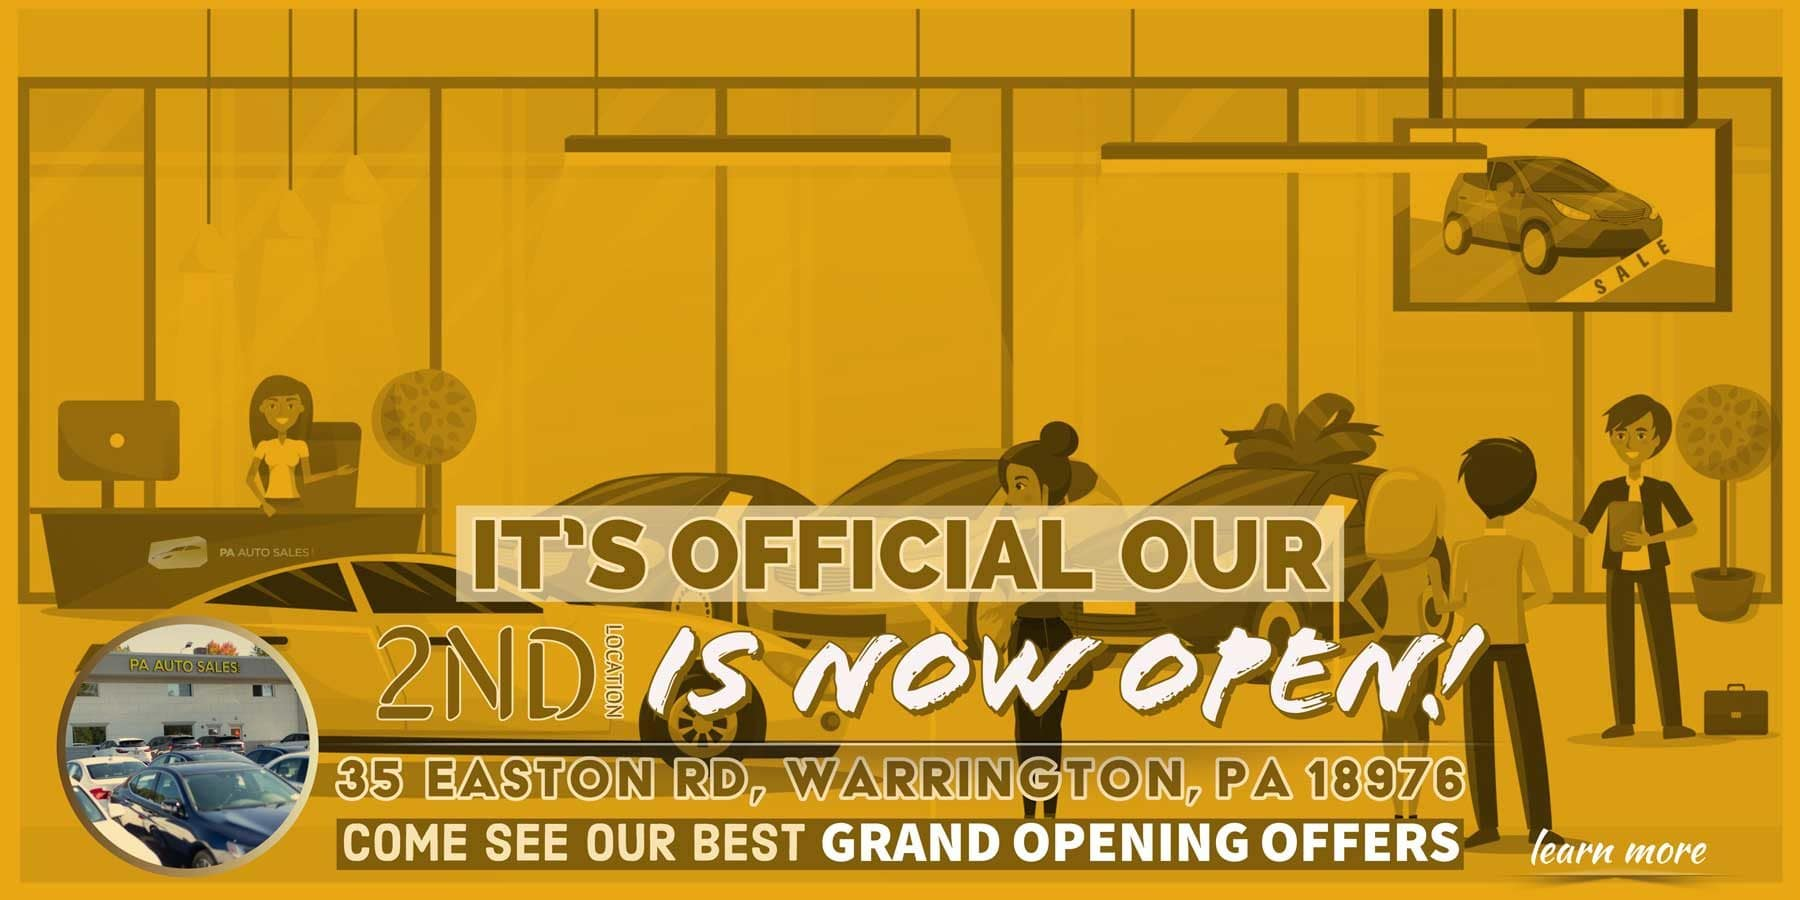 It's Official Our 2ND Location Is Open Now - PA Auto Sales on 35 Easton Road Warrington, PA 18976